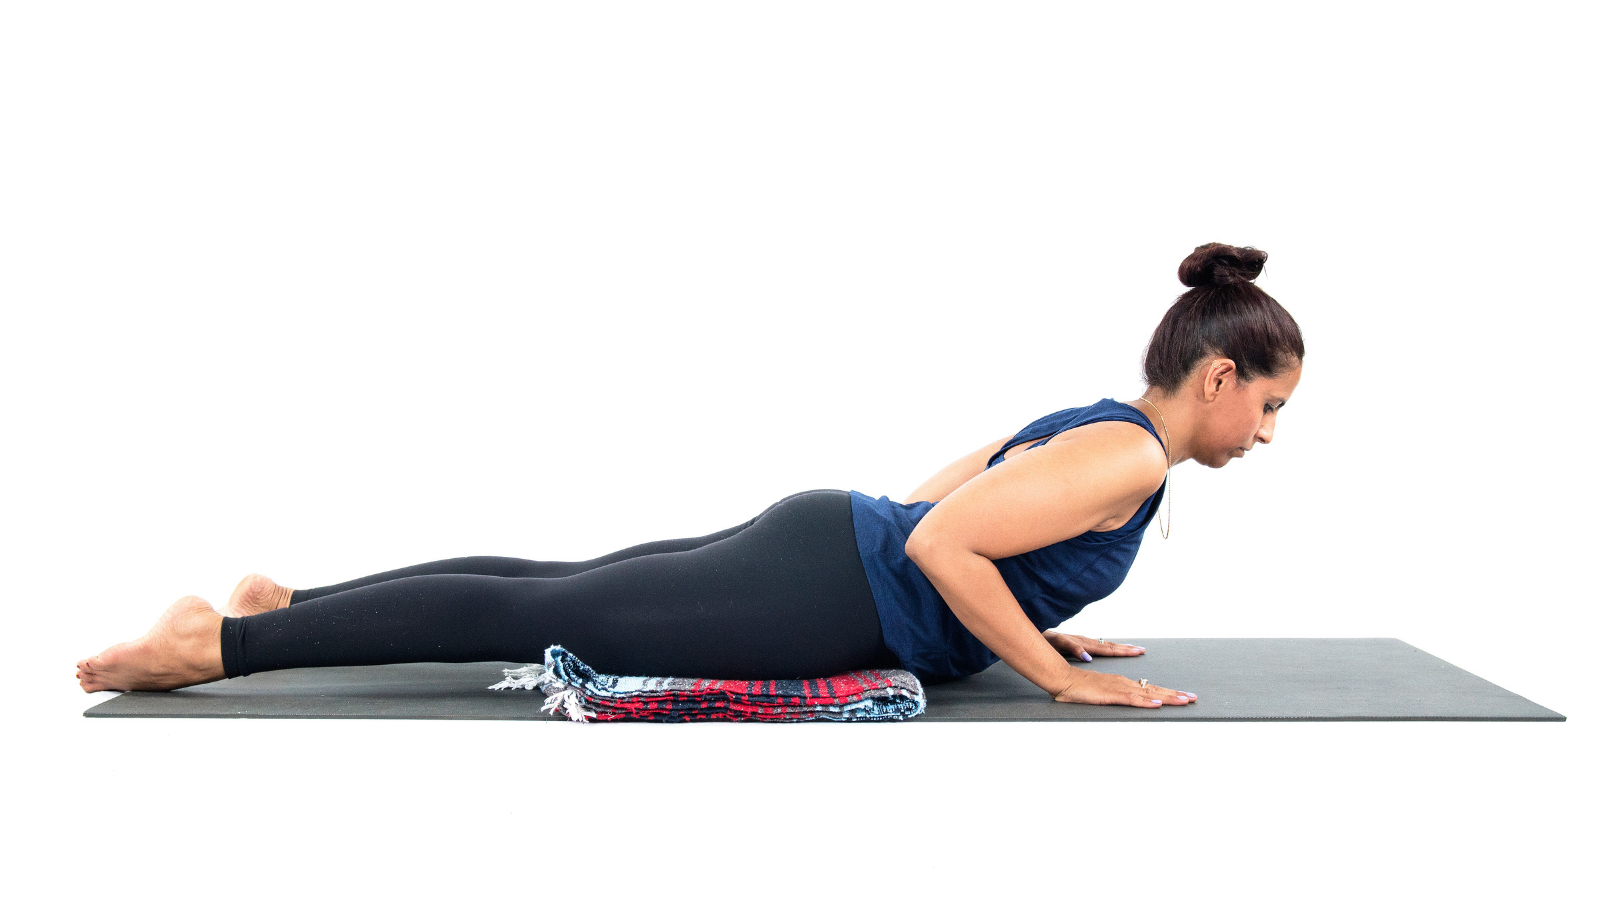 Beginner tips to customize yoga poses in a safe way in Cobra Pose (Sanskrit name: Bhujangasana)